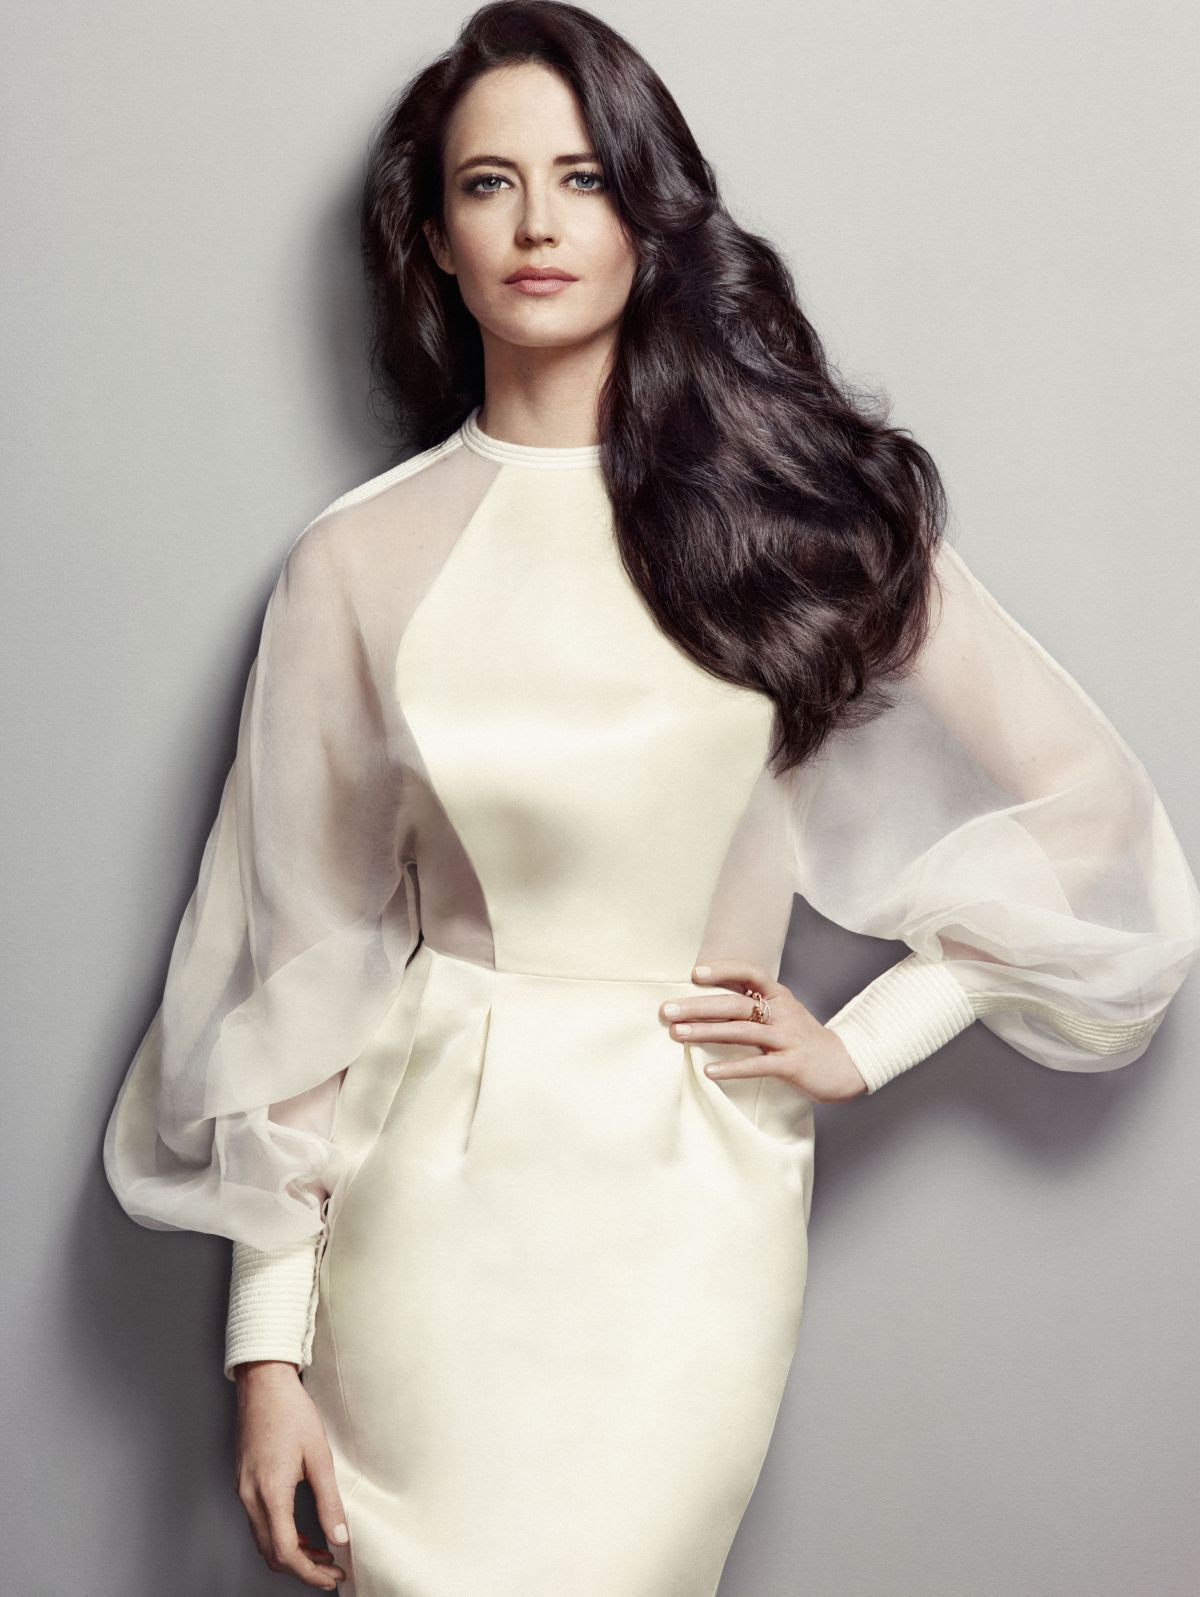 EVA GREEN for L